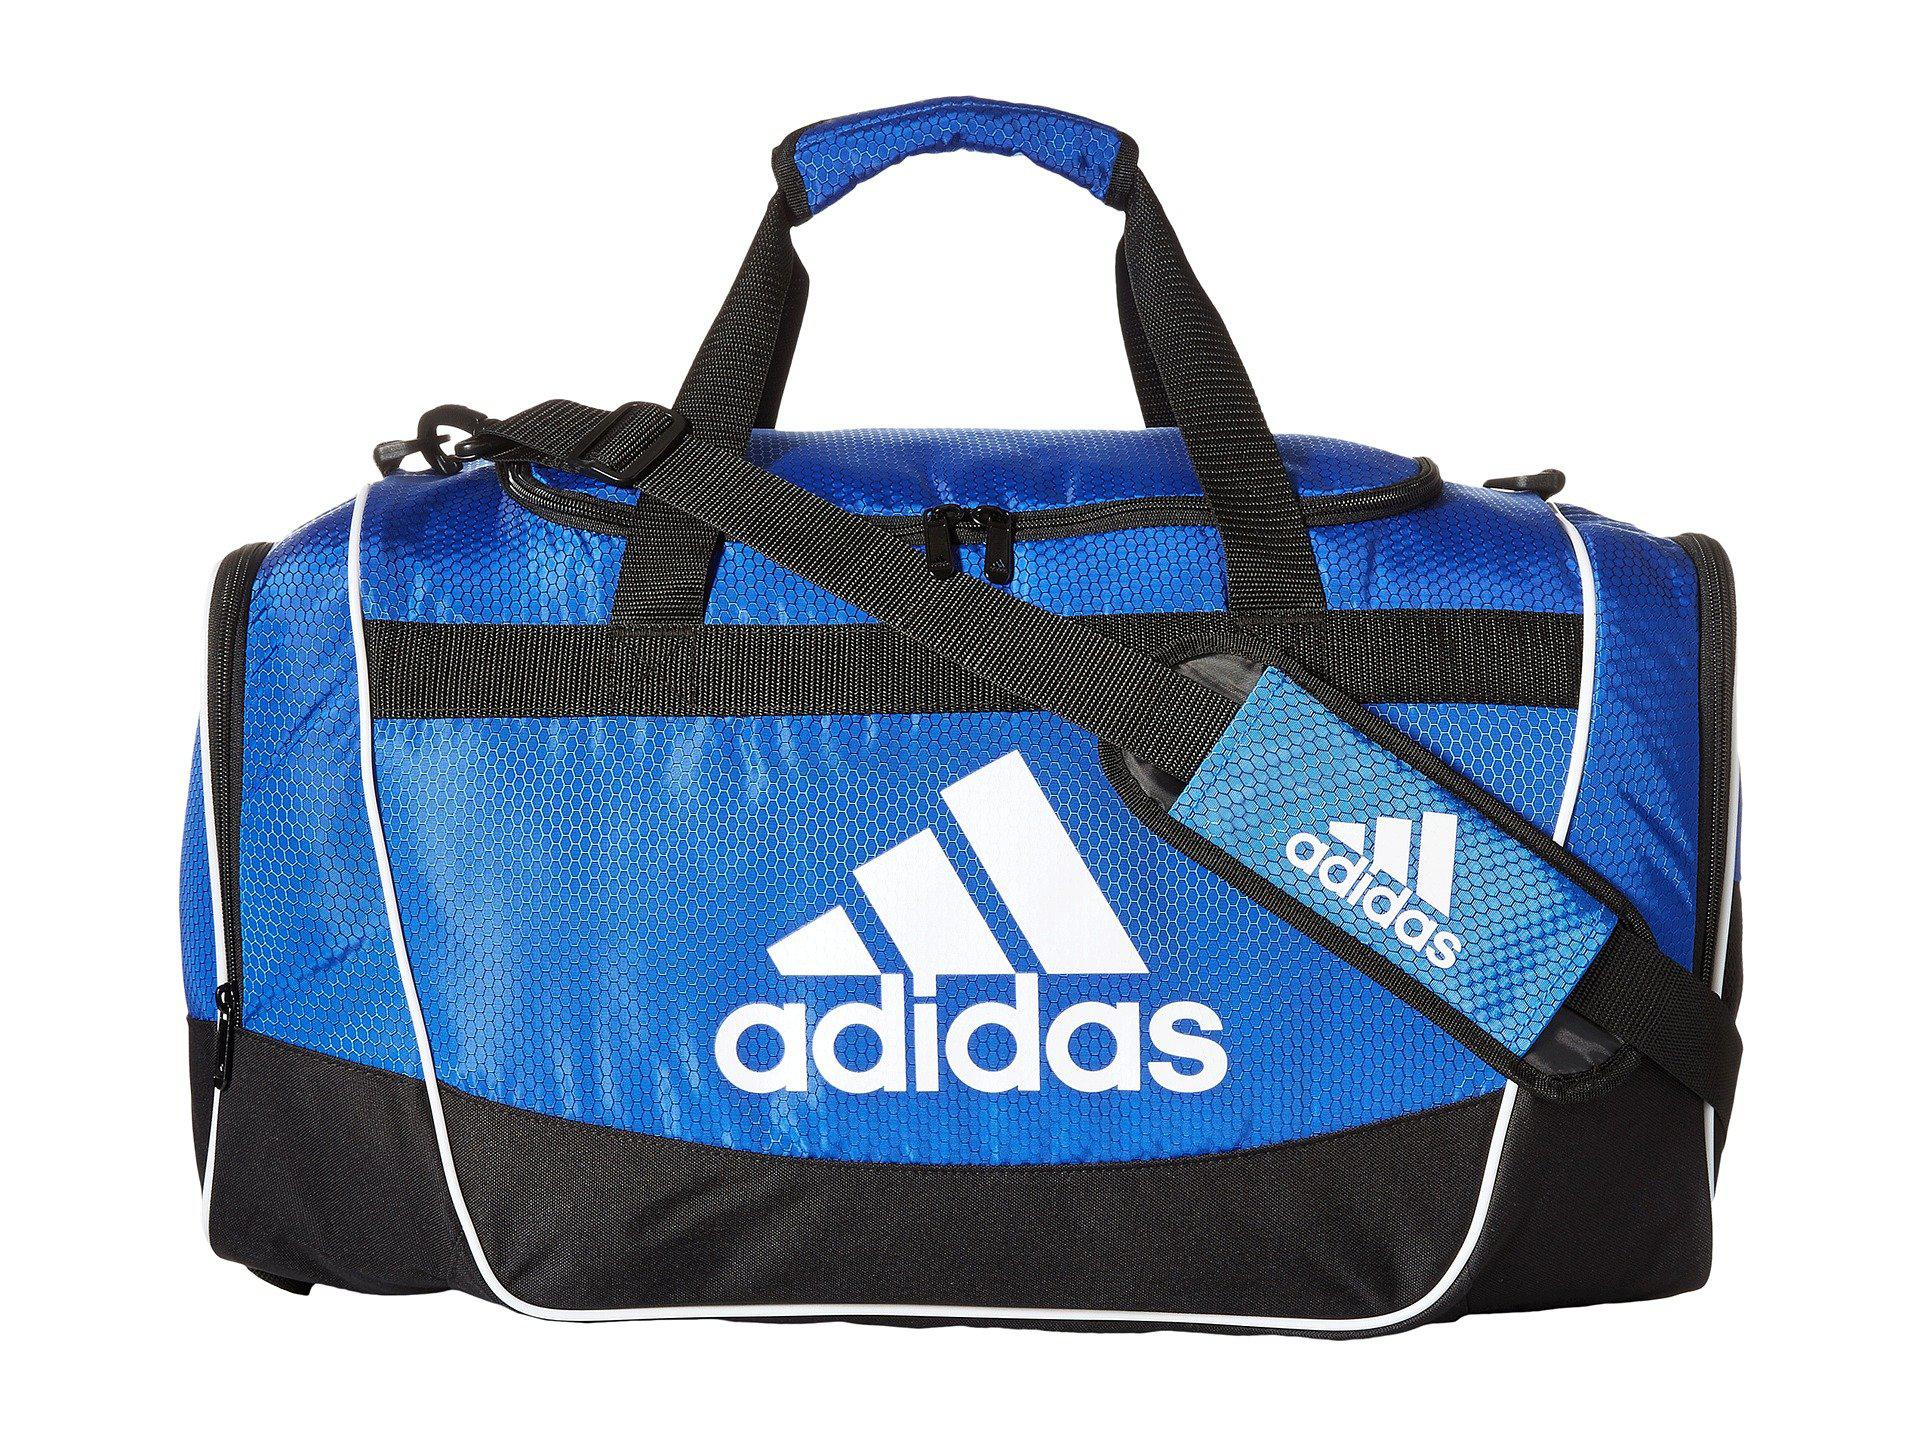 d8ad83140f Adidas - Blue Defender Ii Small Duffel for Men - Lyst. View fullscreen